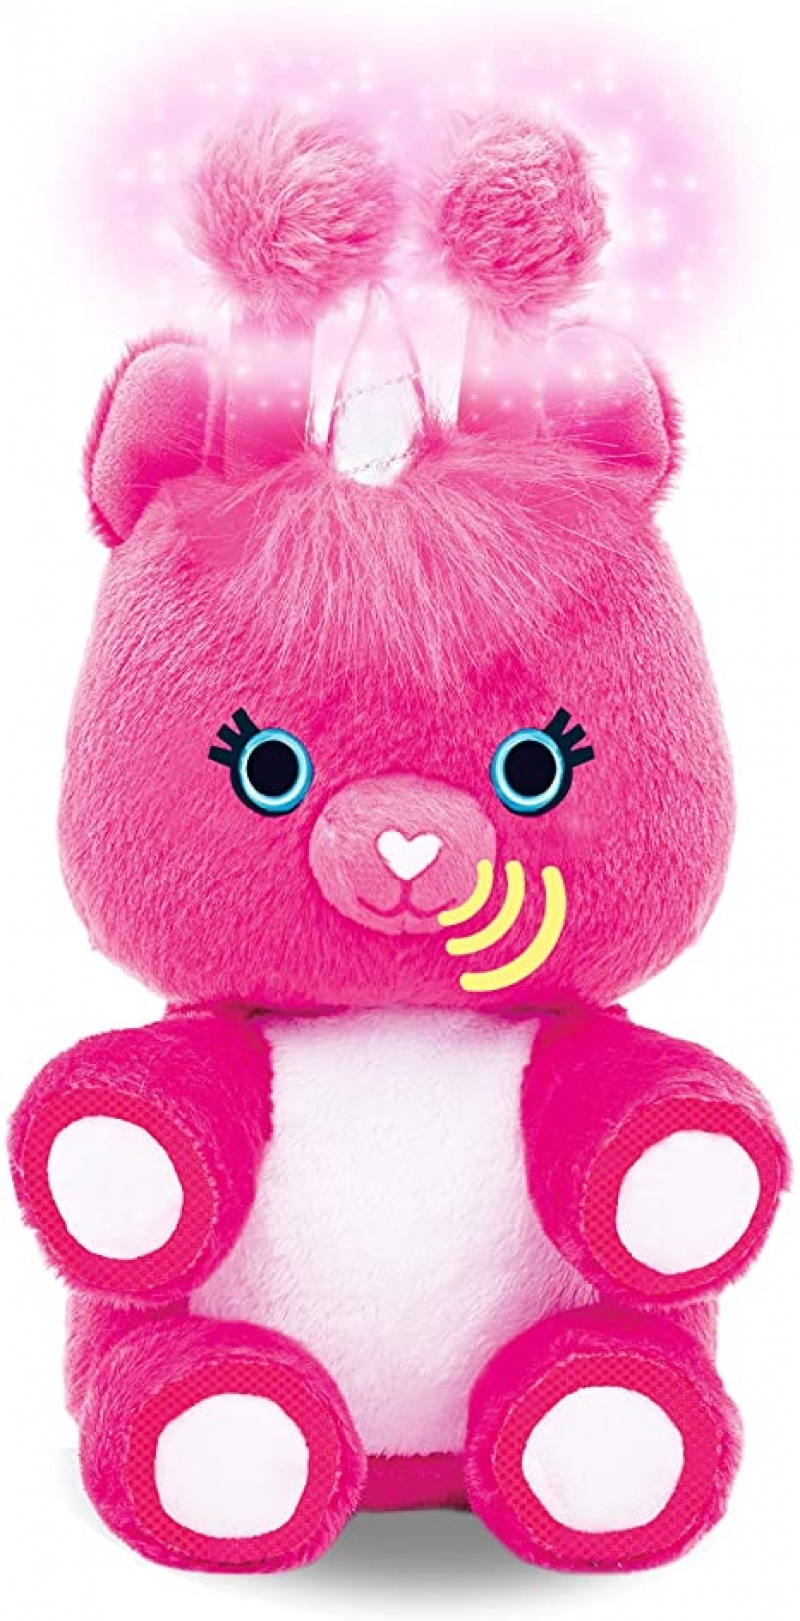 ihocon: [Amazon Echo互動玩偶] Fuzzible Friends Sparkles The Unicorn Plush Light Up Toy – Works with Compatible Amazon Echo Devices for Interactive Activities and Sounds